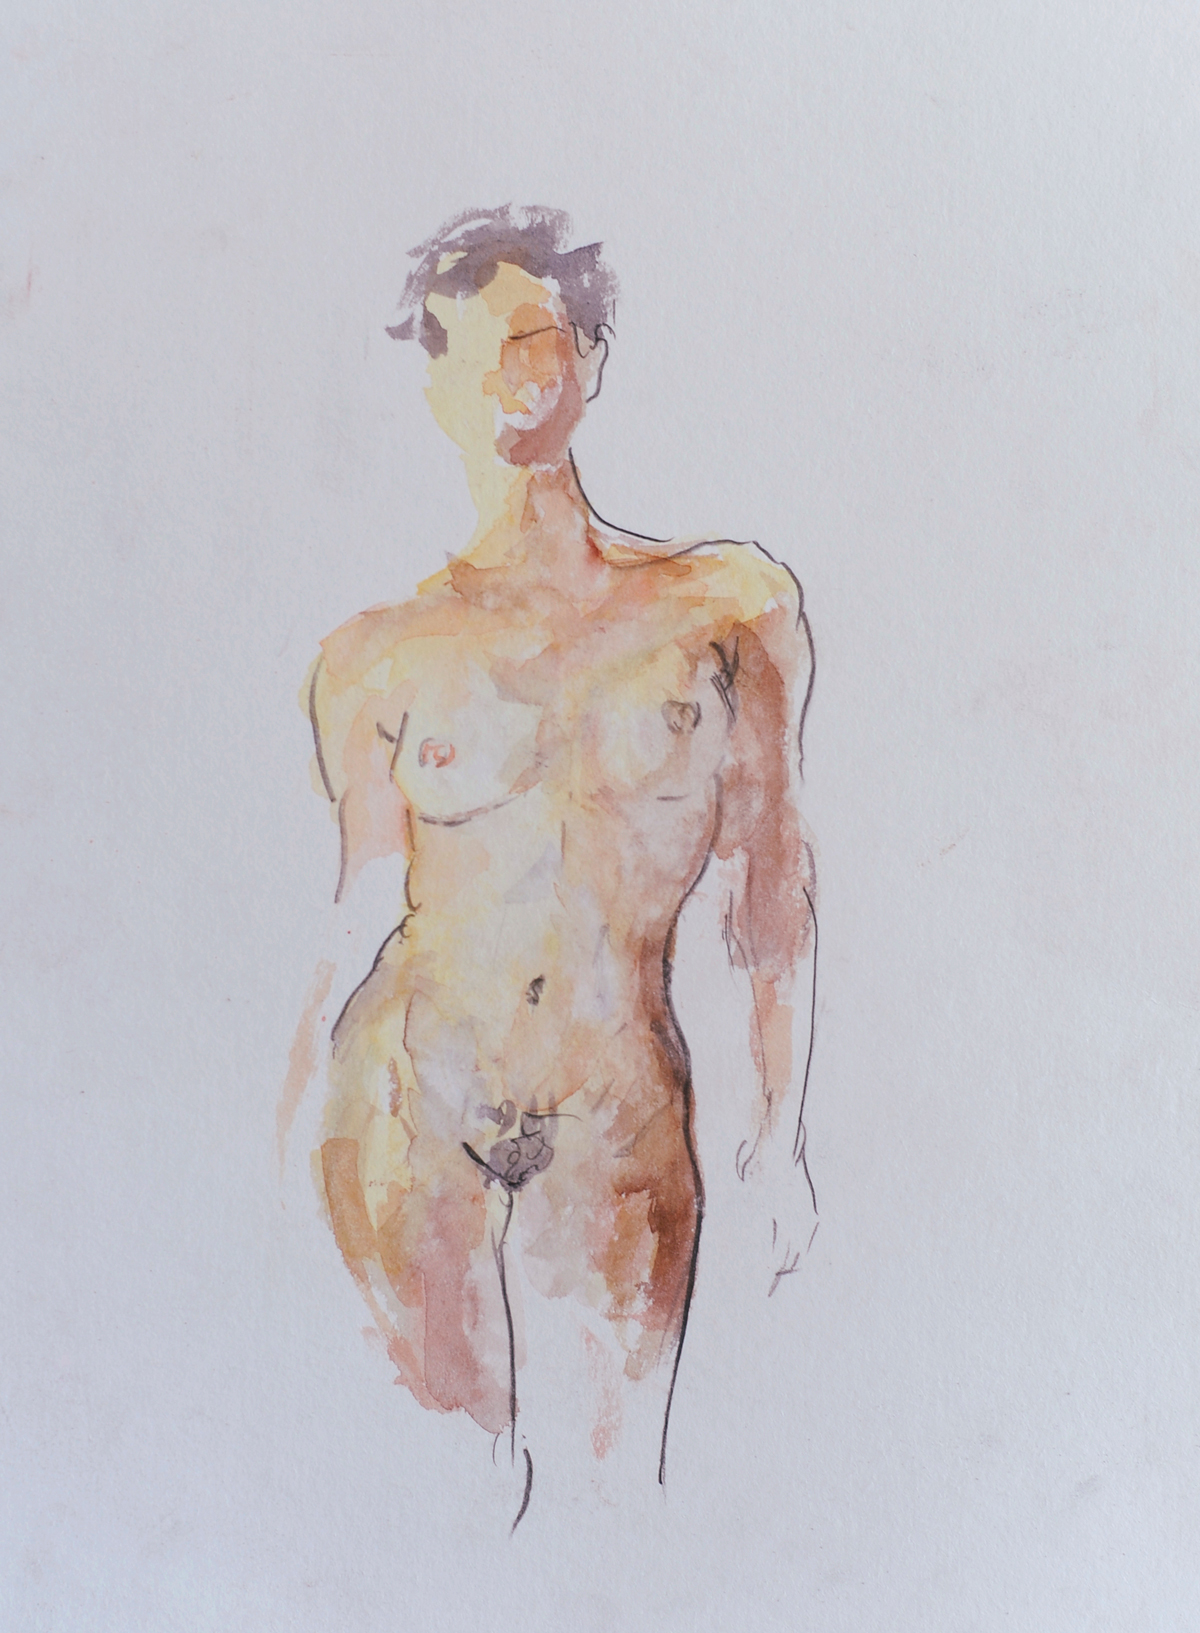 Femal-nude-2019-[Watercolor-and-pencil-on-paper-13x10]